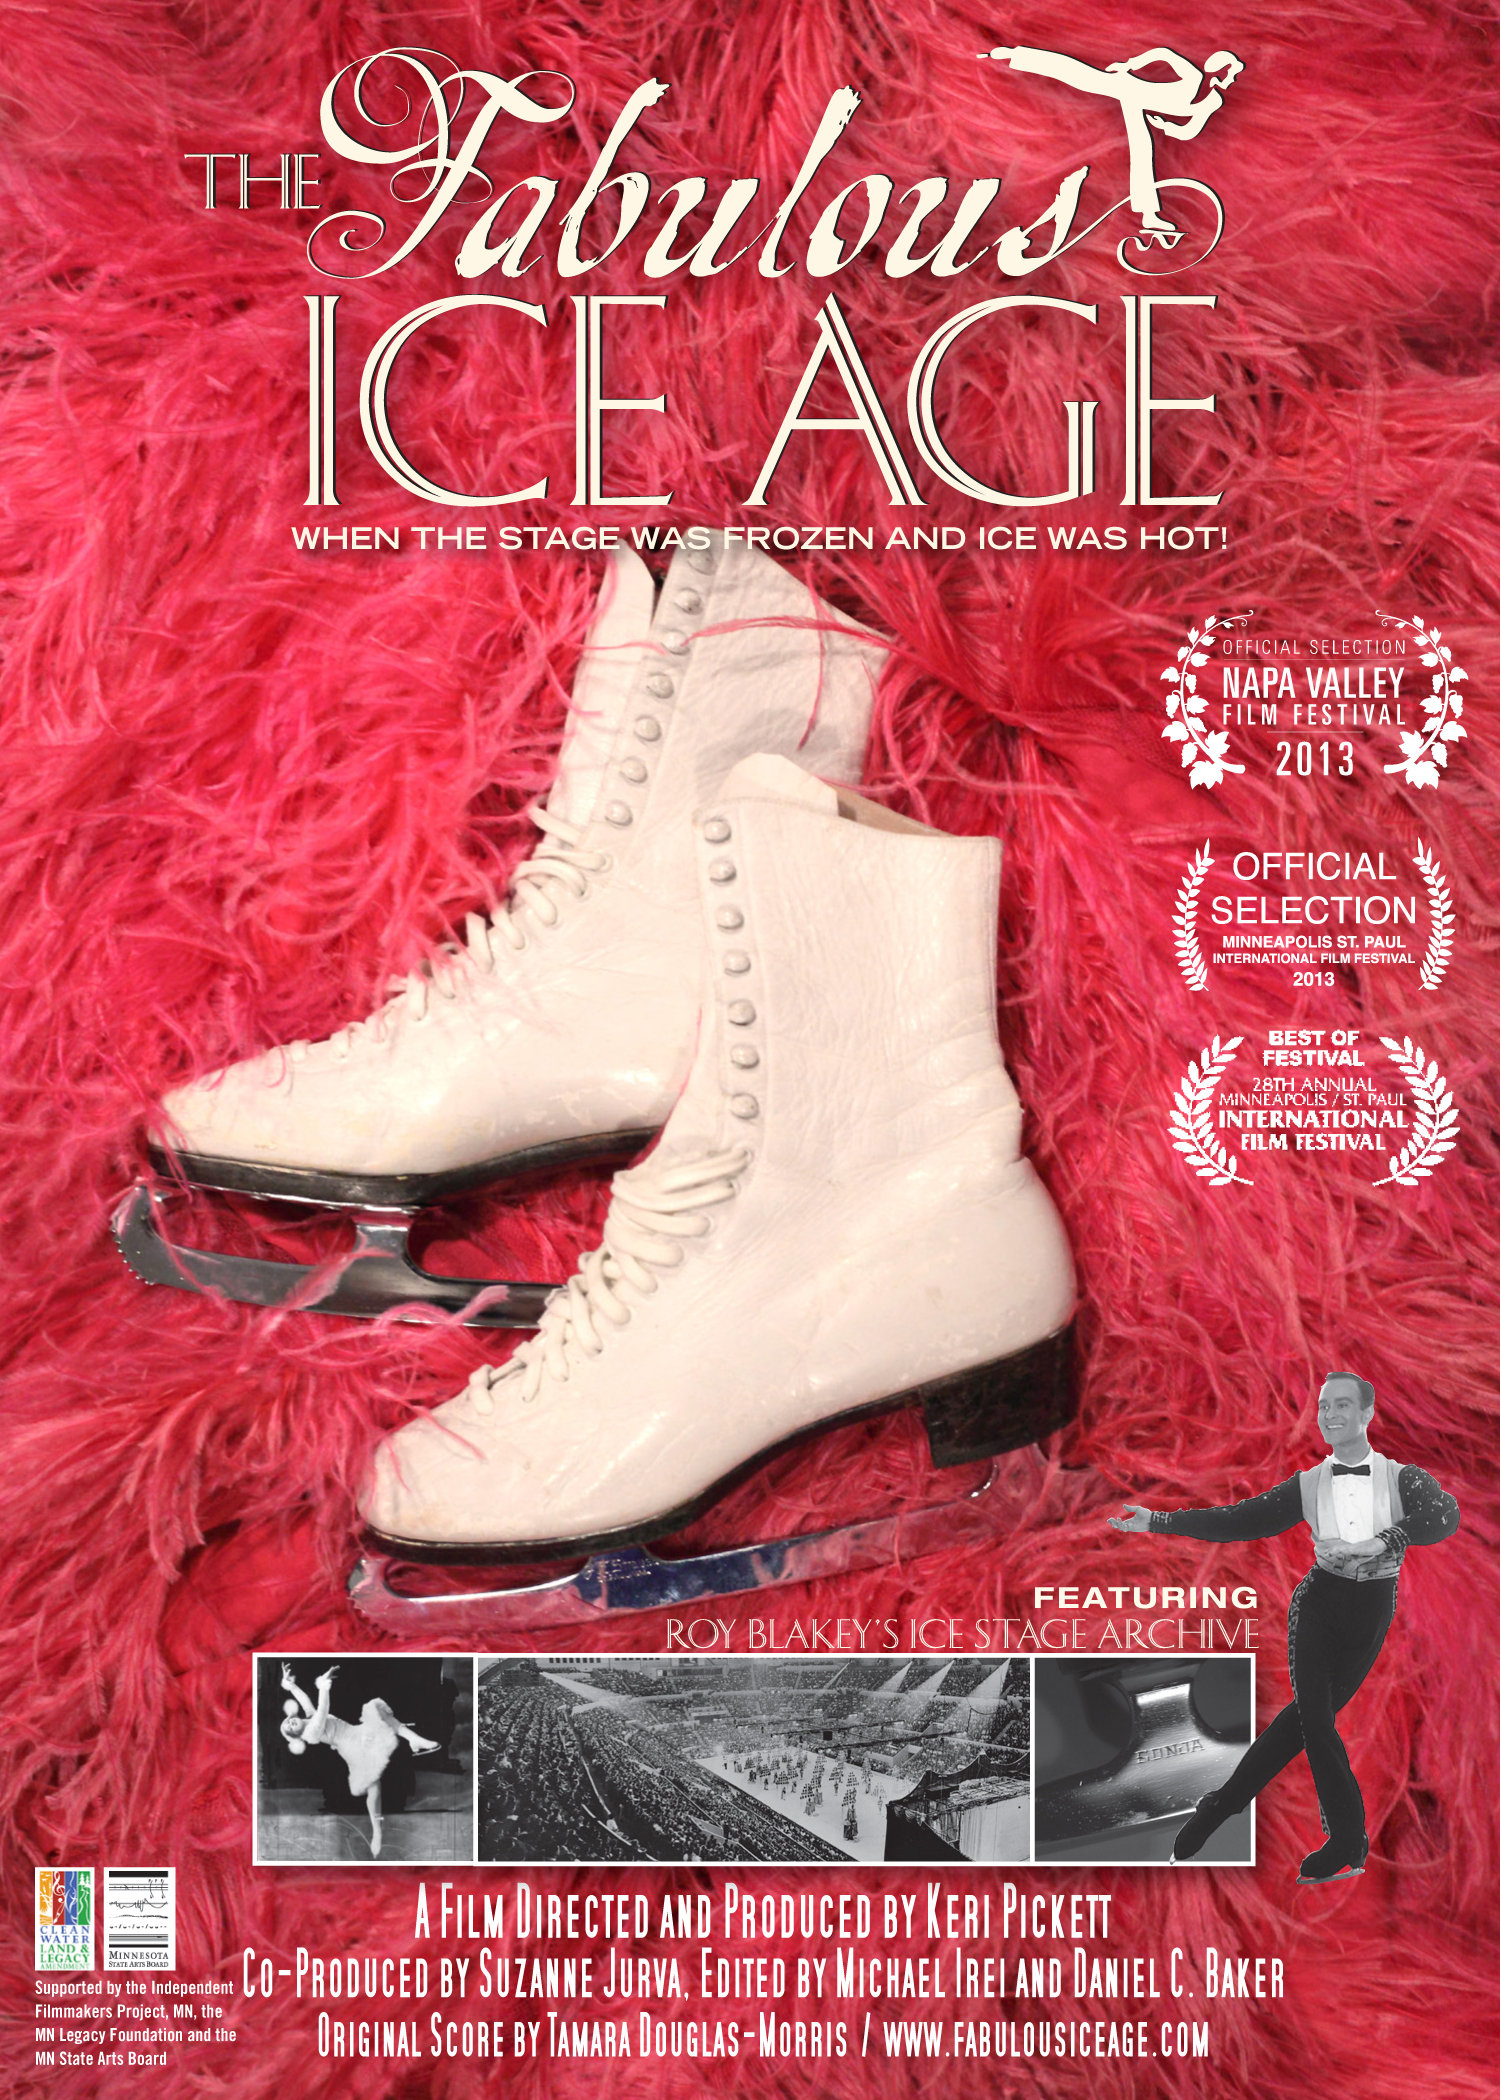 Poster for The Fabulous Ice Age shows a pair of white figure skates against a red feather boa.